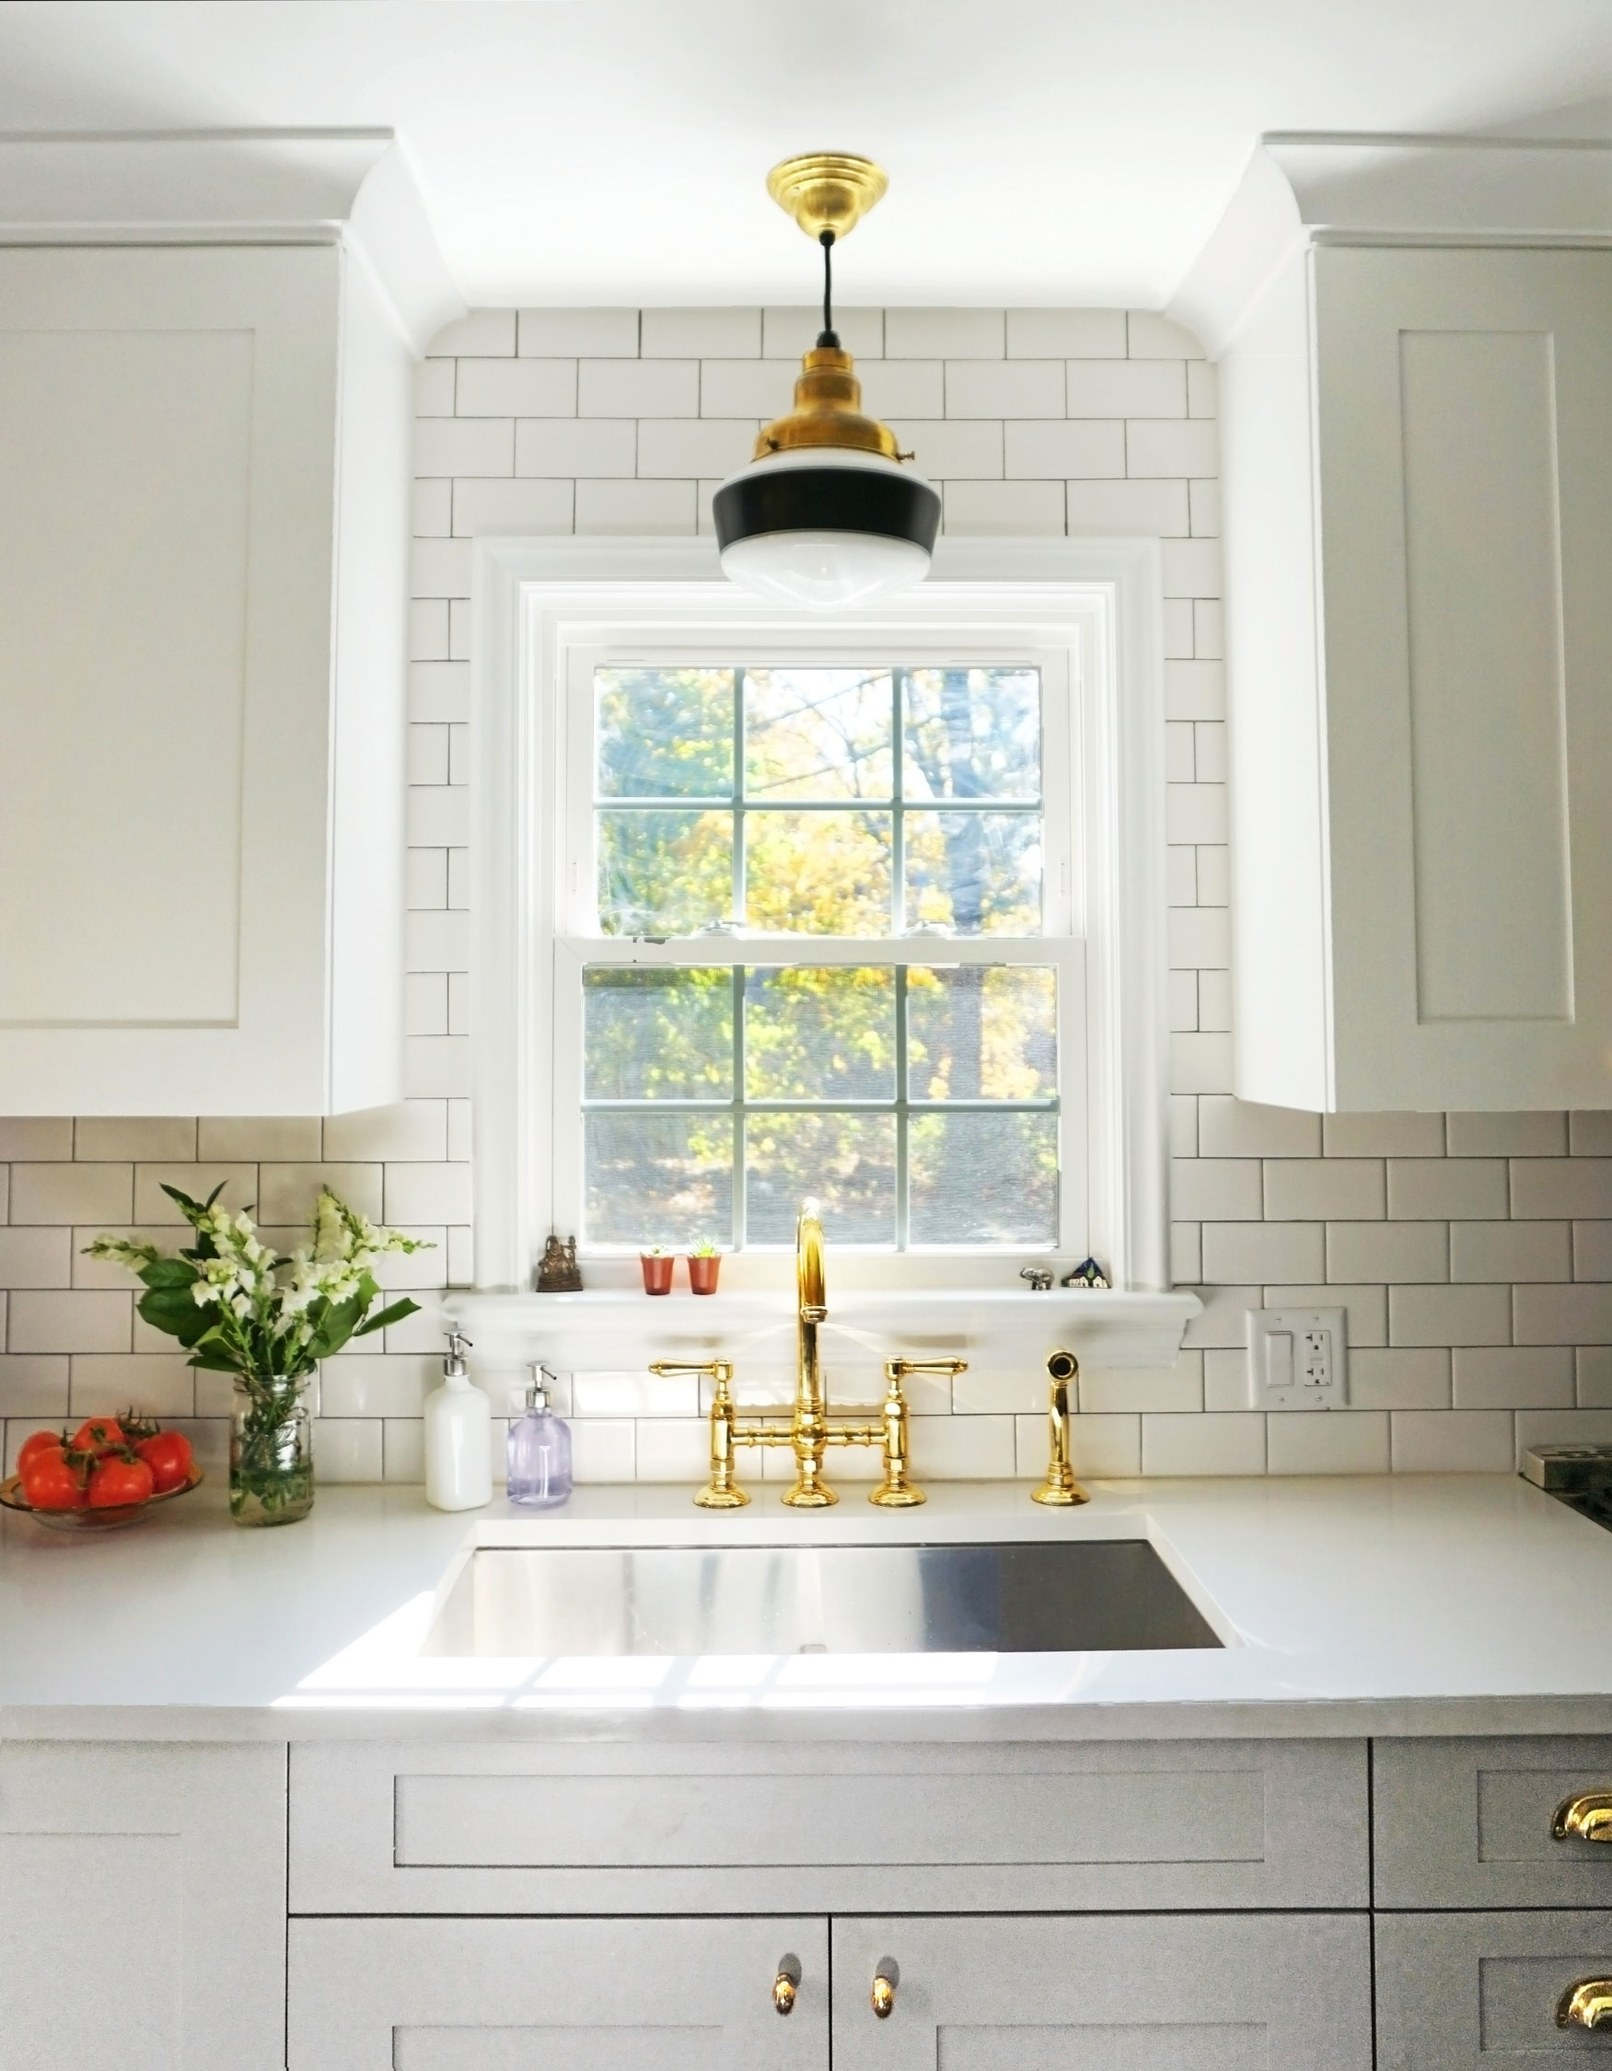 A Little Kitchen Inspiration for the Holidays